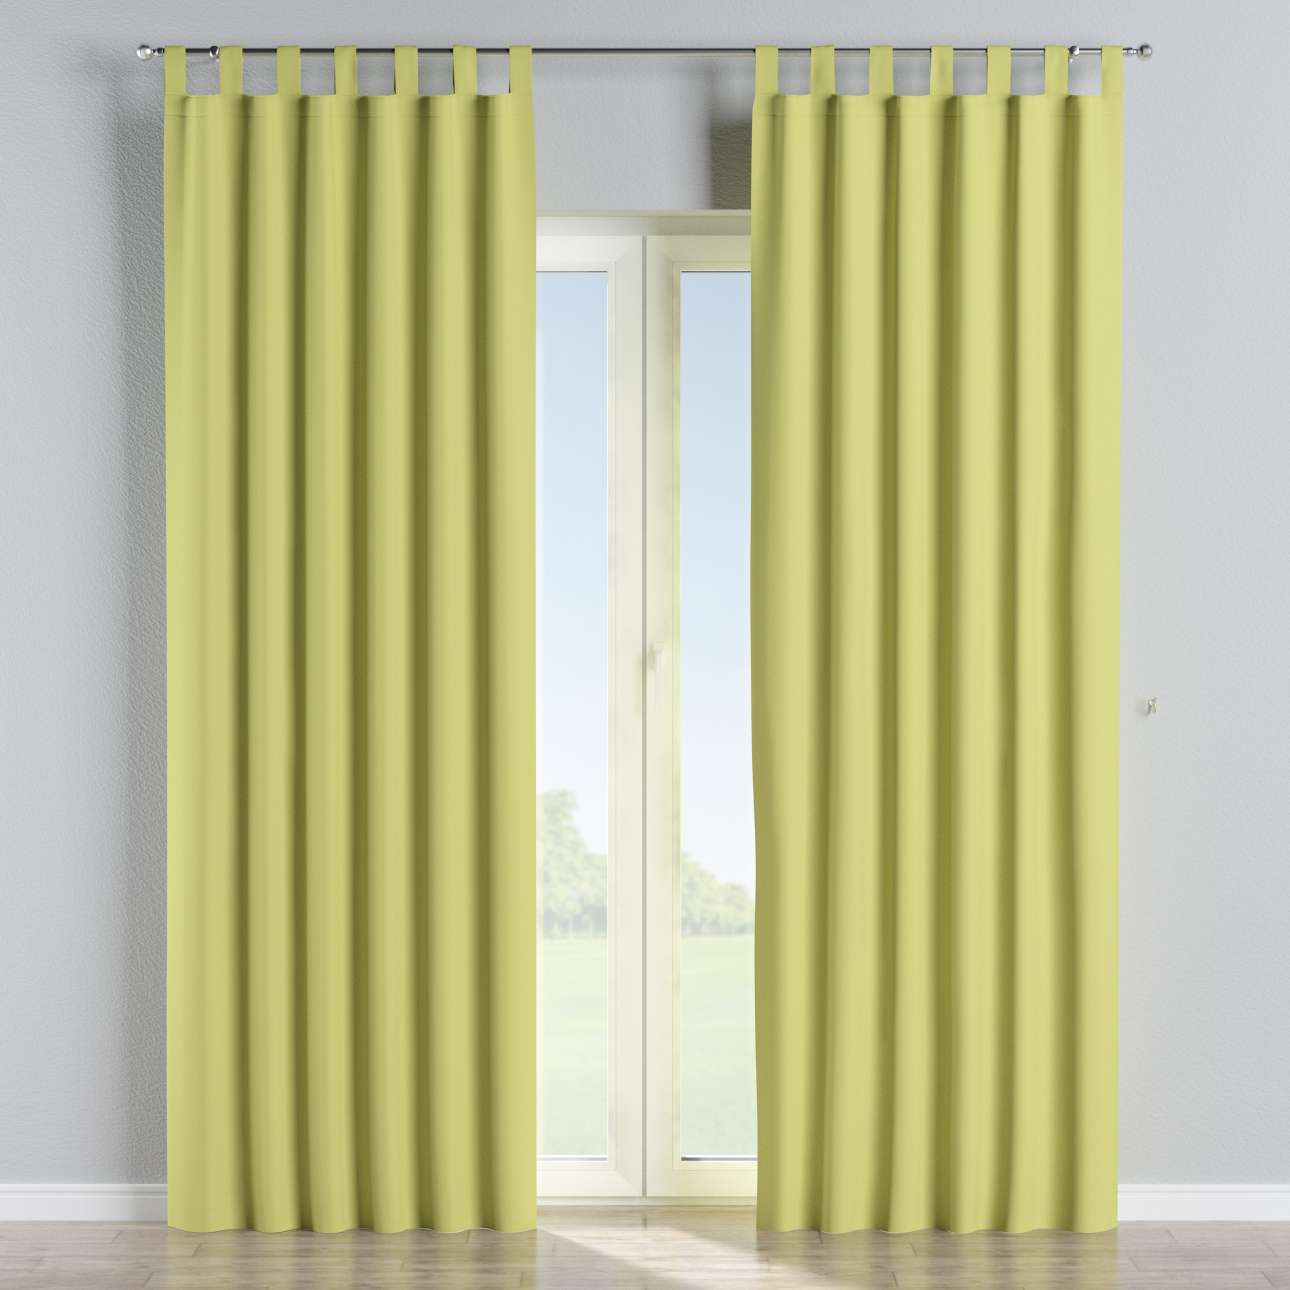 Blackout tab top curtains in collection Blackout, fabric: 269-17